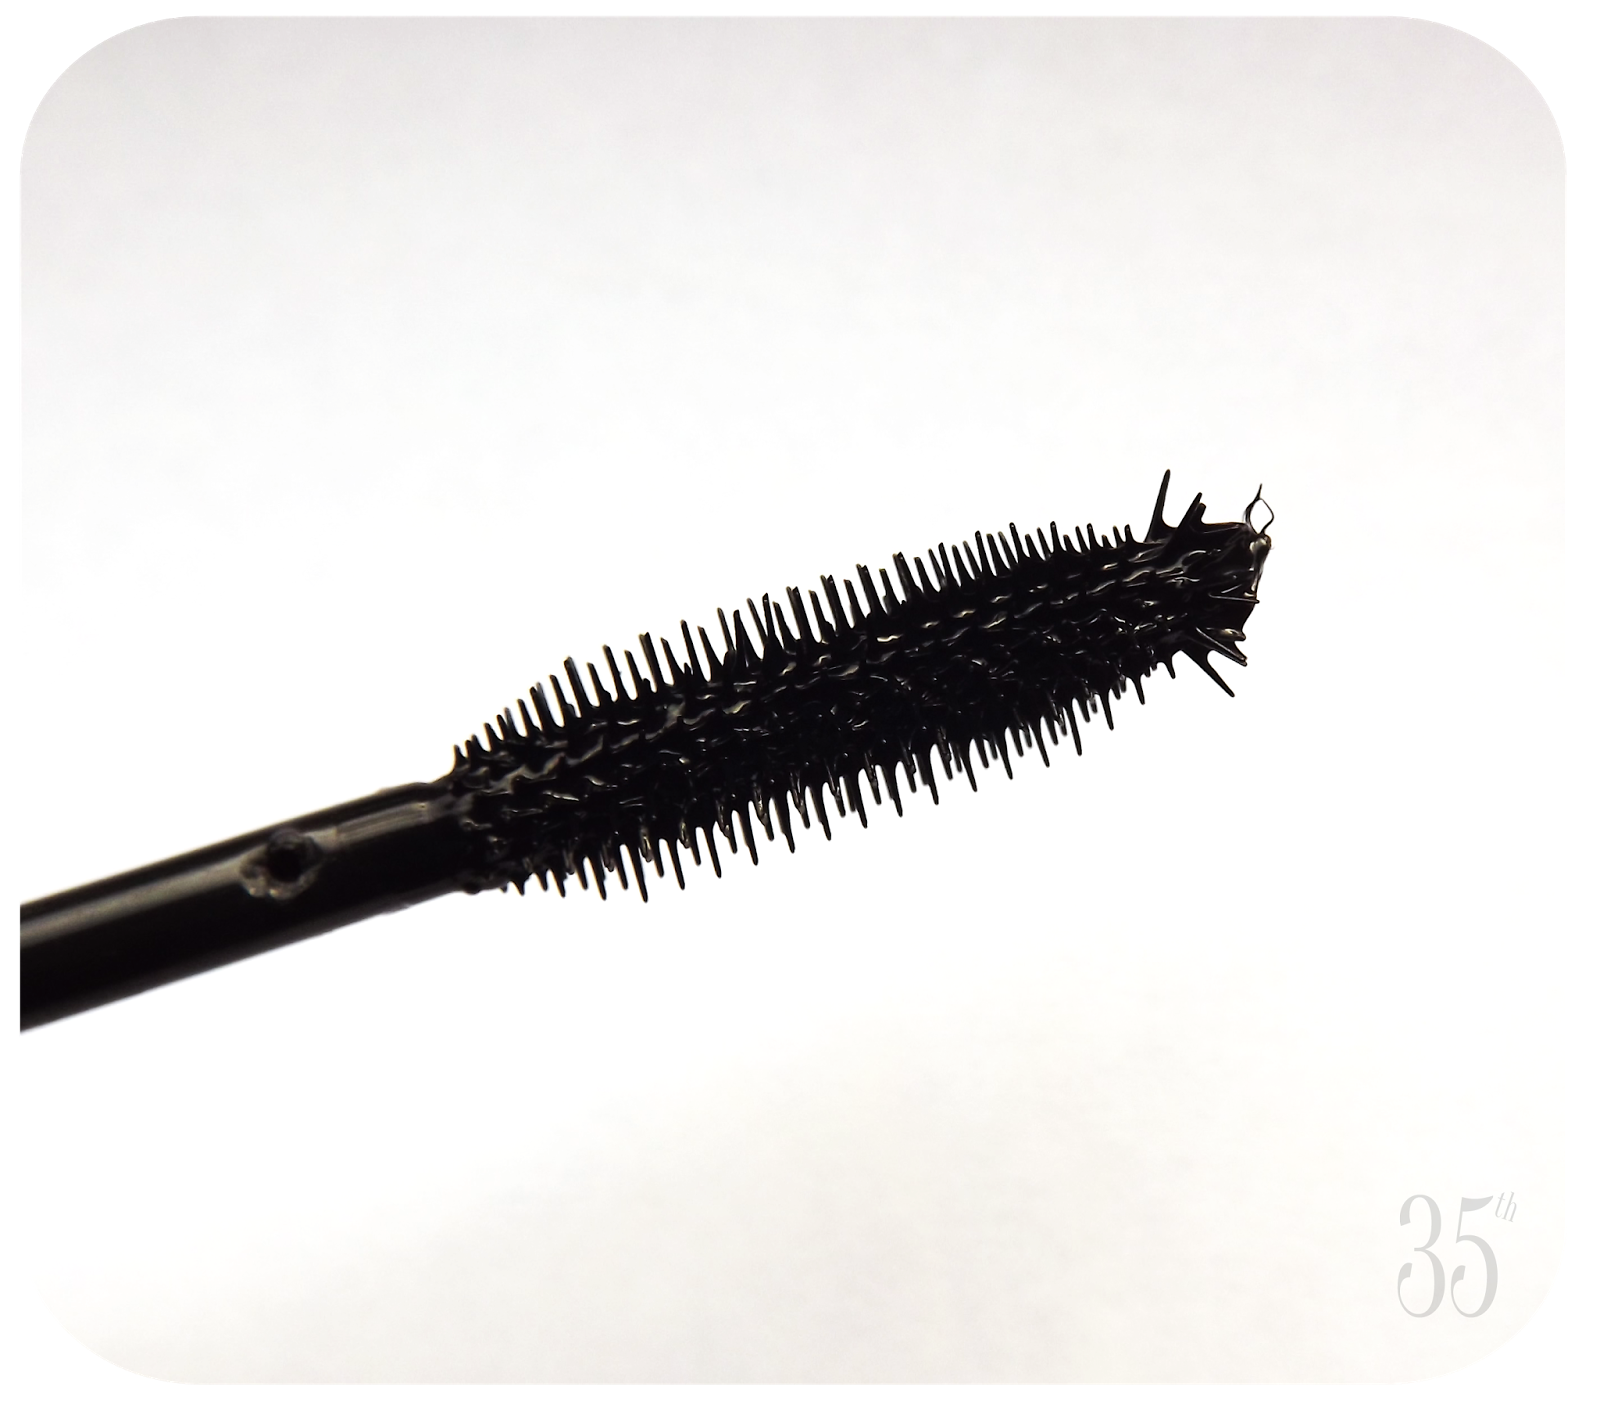 Benefit They're Real Mascara brush